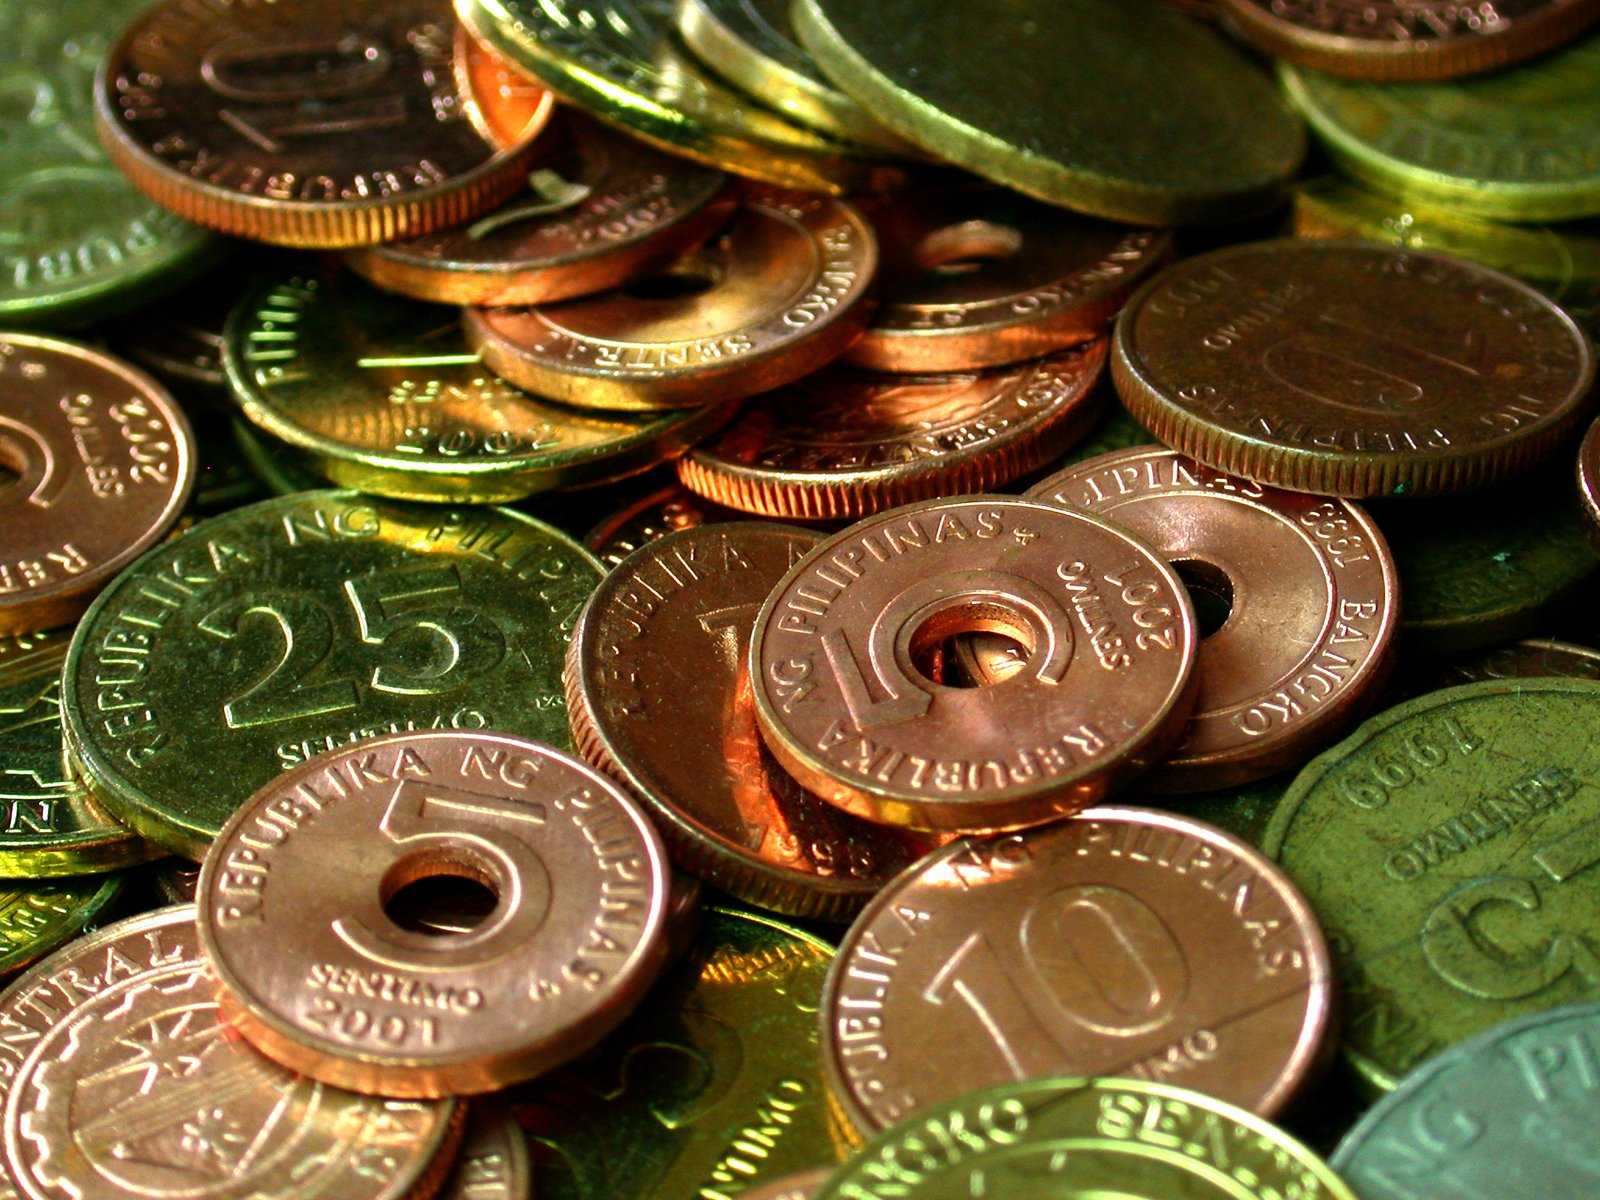 Free Philippine Coins Stock Photo